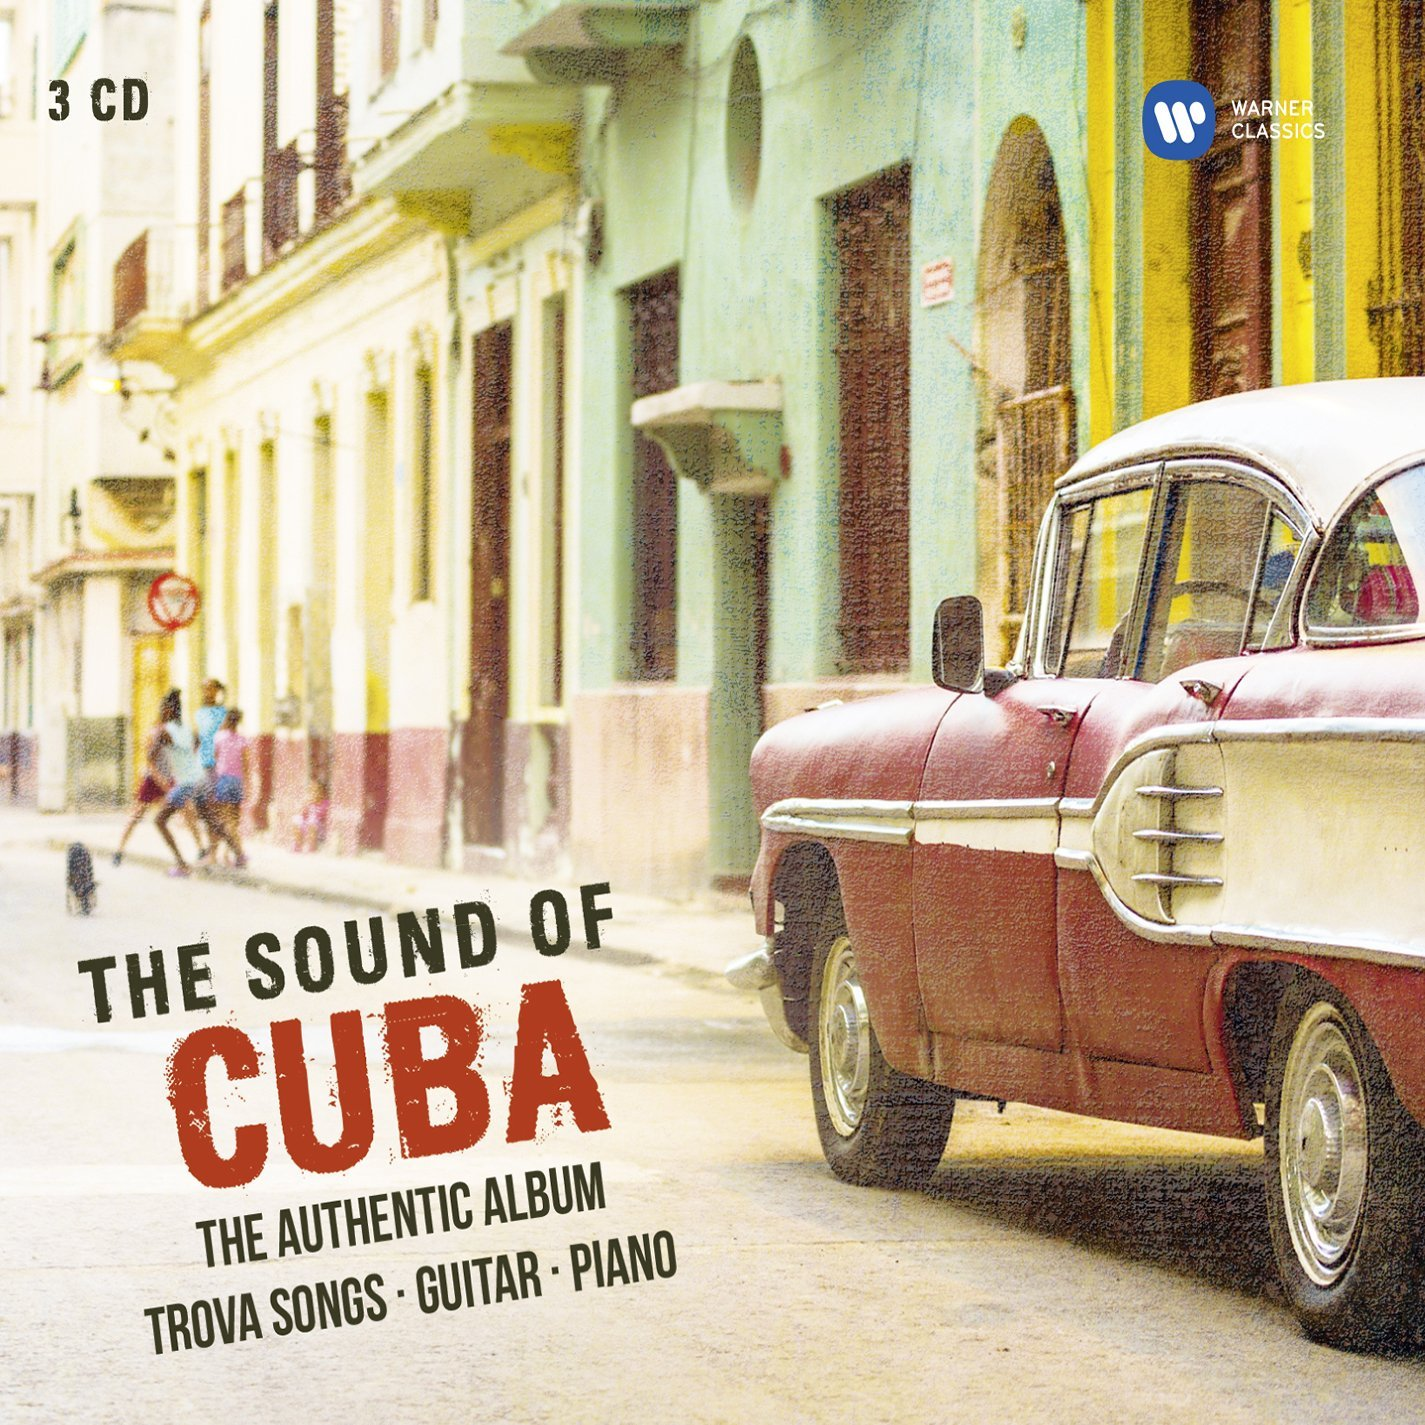 world 08 17 sound of Cuba